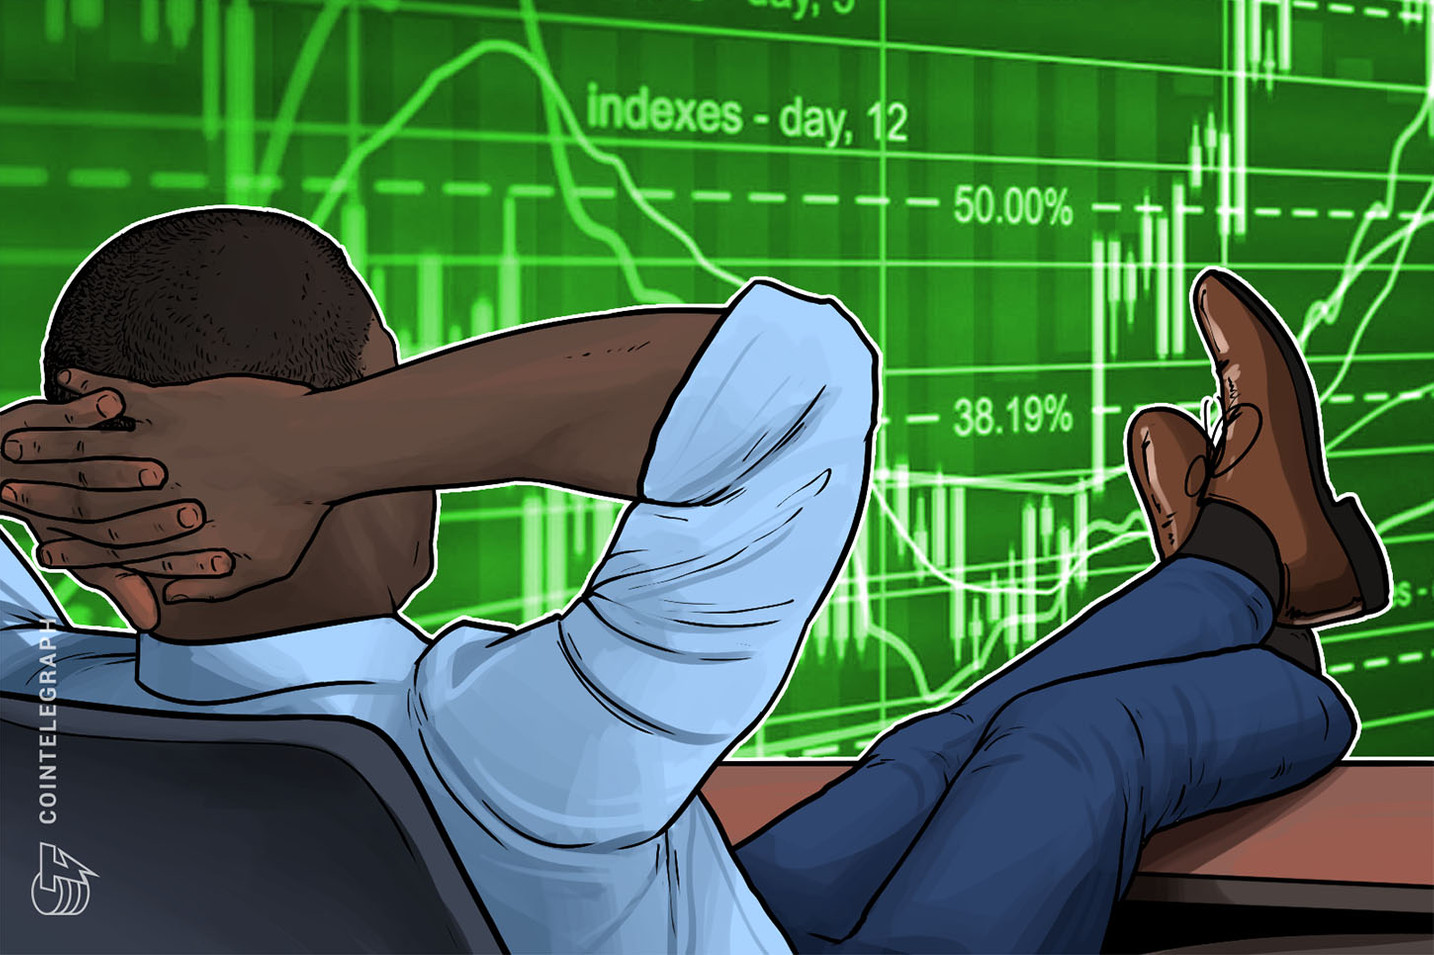 Crypto Markets Gain $25 Bln Over the Week, Ethereum Price Above $600